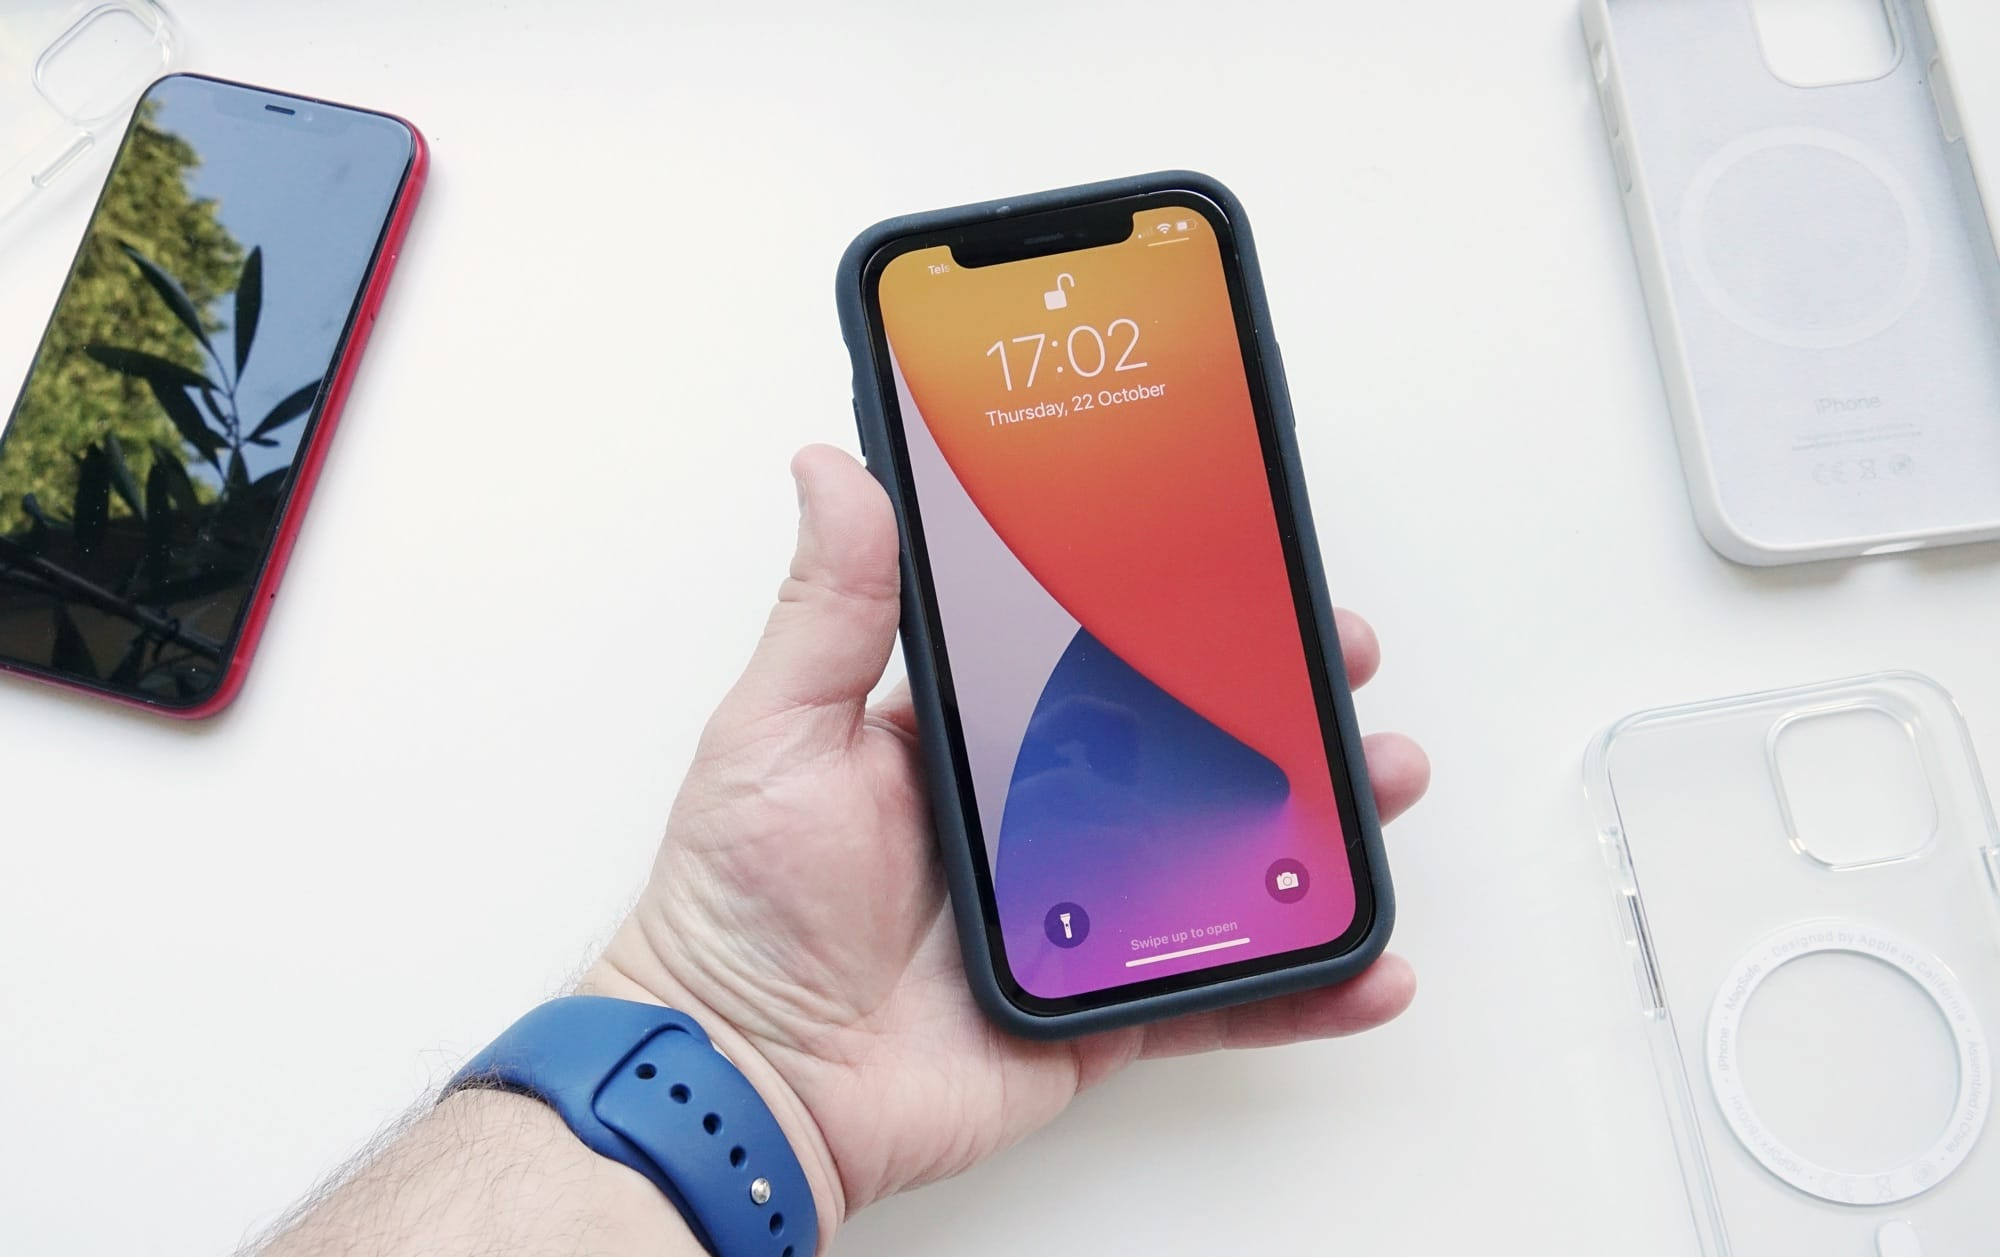 You might be able to fit an iPhone 12 into some iPhone 11 cases, it just won't be pretty.